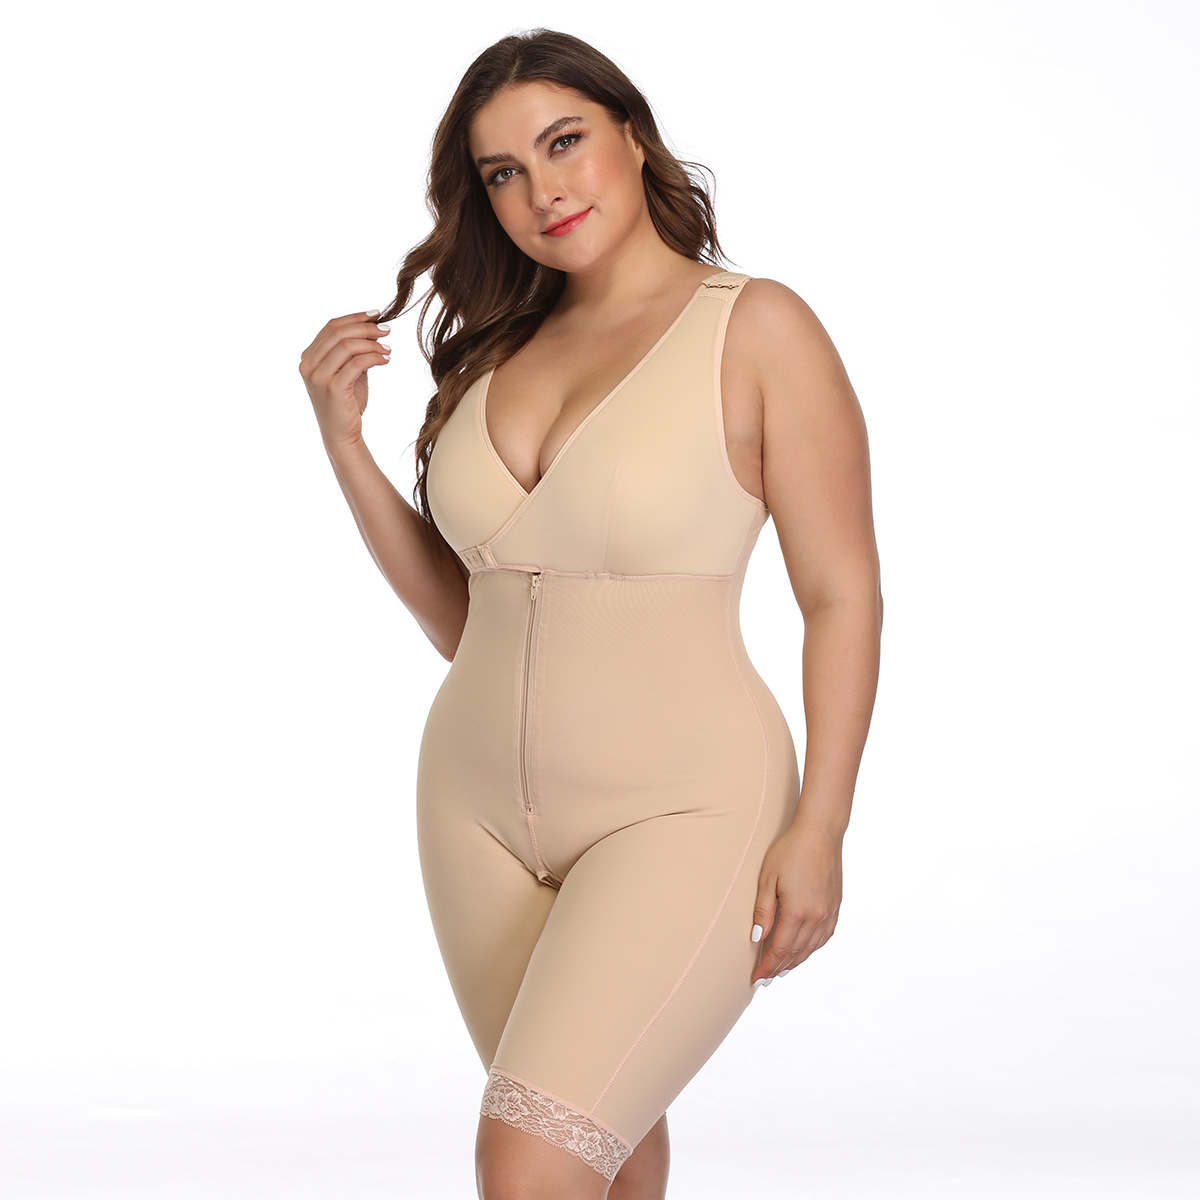 Colombian girdles for women and get the silhouette you always dreamed of.